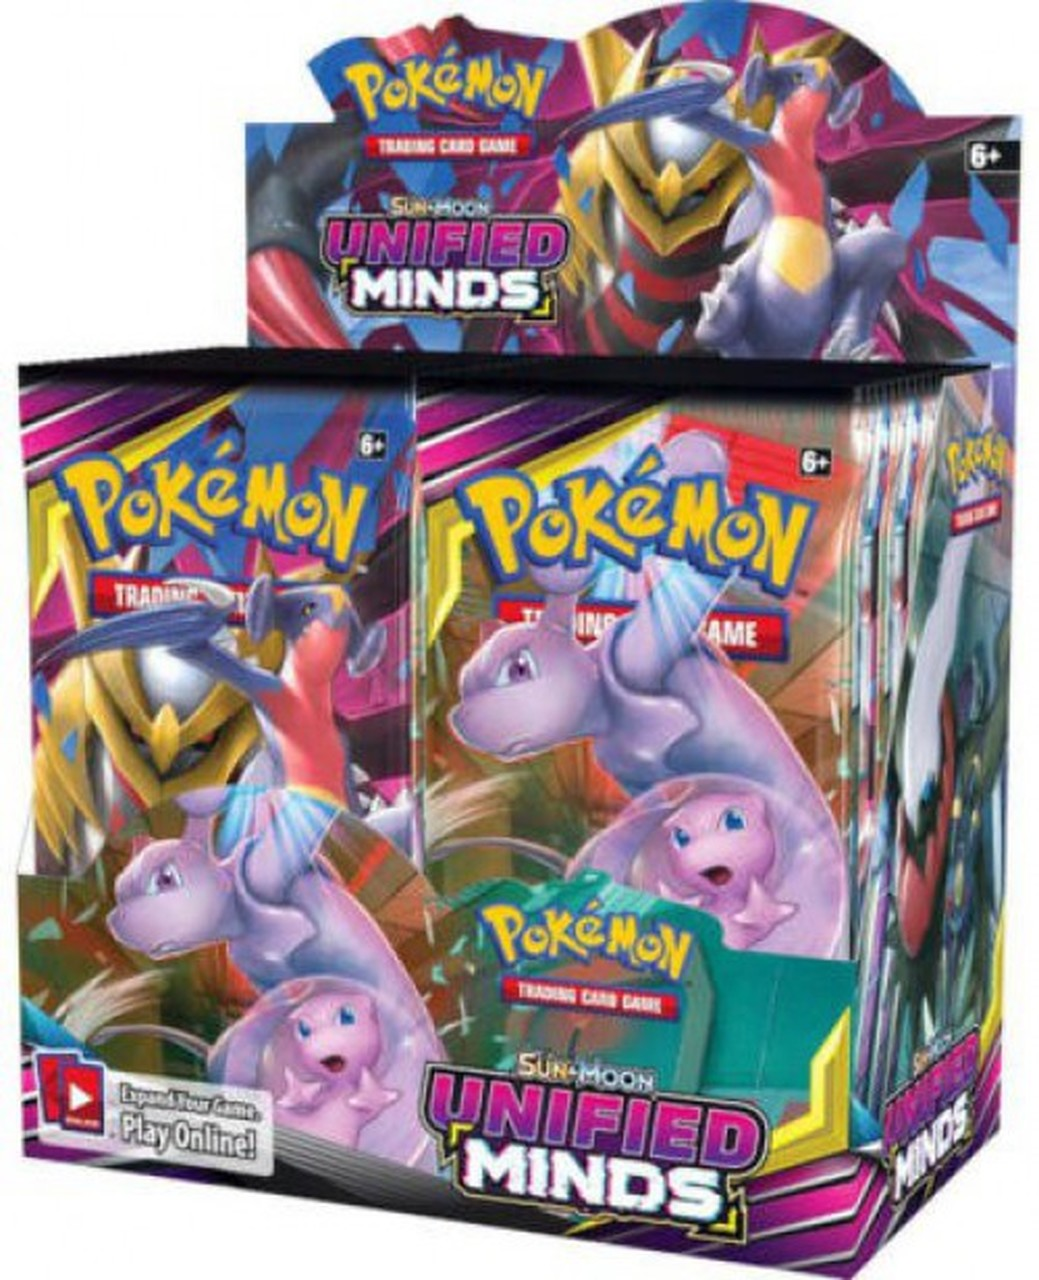 Pokémon TCG: Sun & Moon Unified Minds Display Box (36 Booster Packs) - Evolution TCG | Evolution TCG